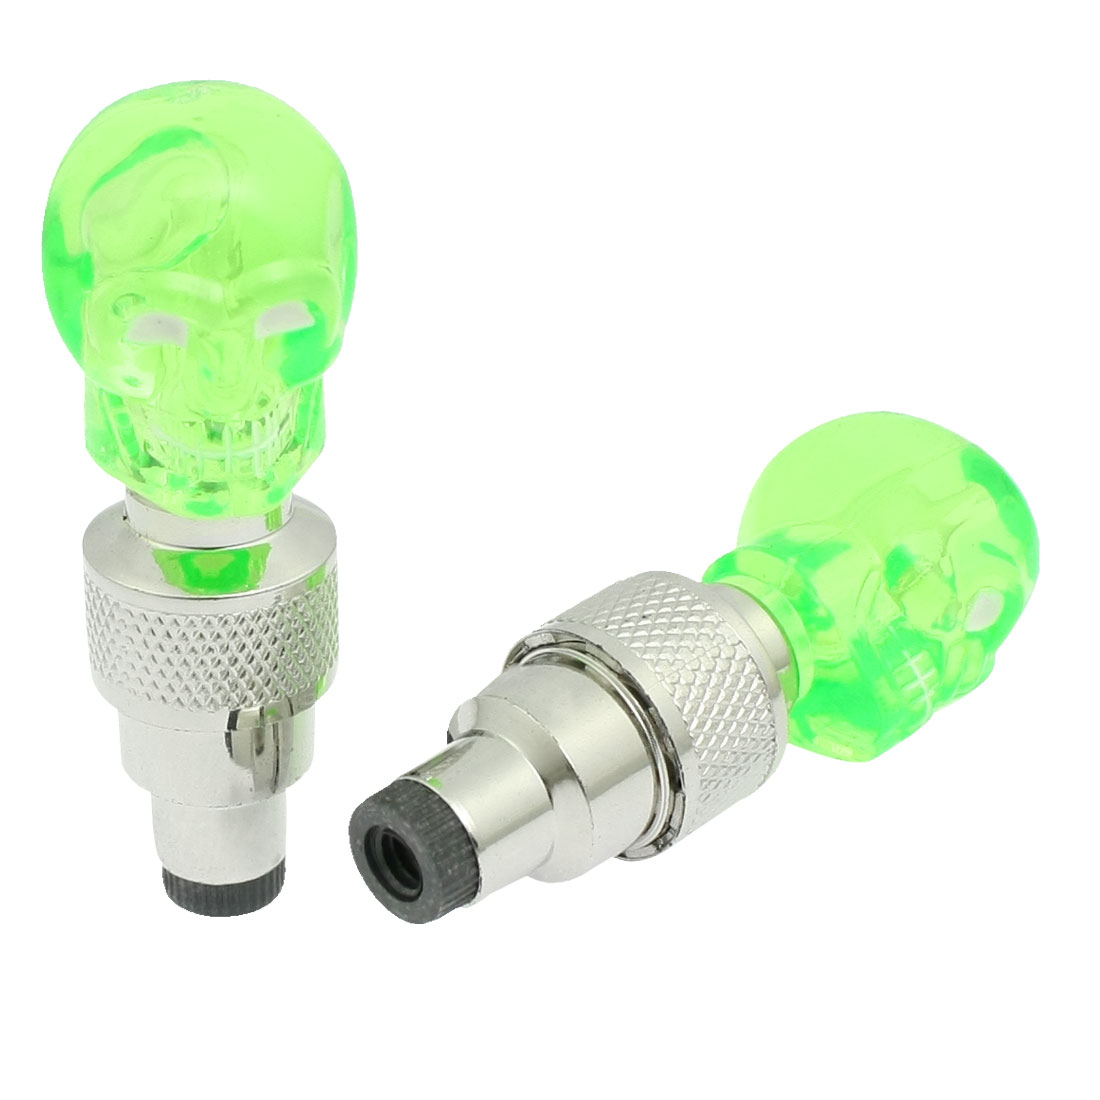 2 Pcs Green Plastic Skeleton Head Blue LED Motorcycle Car Tyre Tire Valve Cap Cover